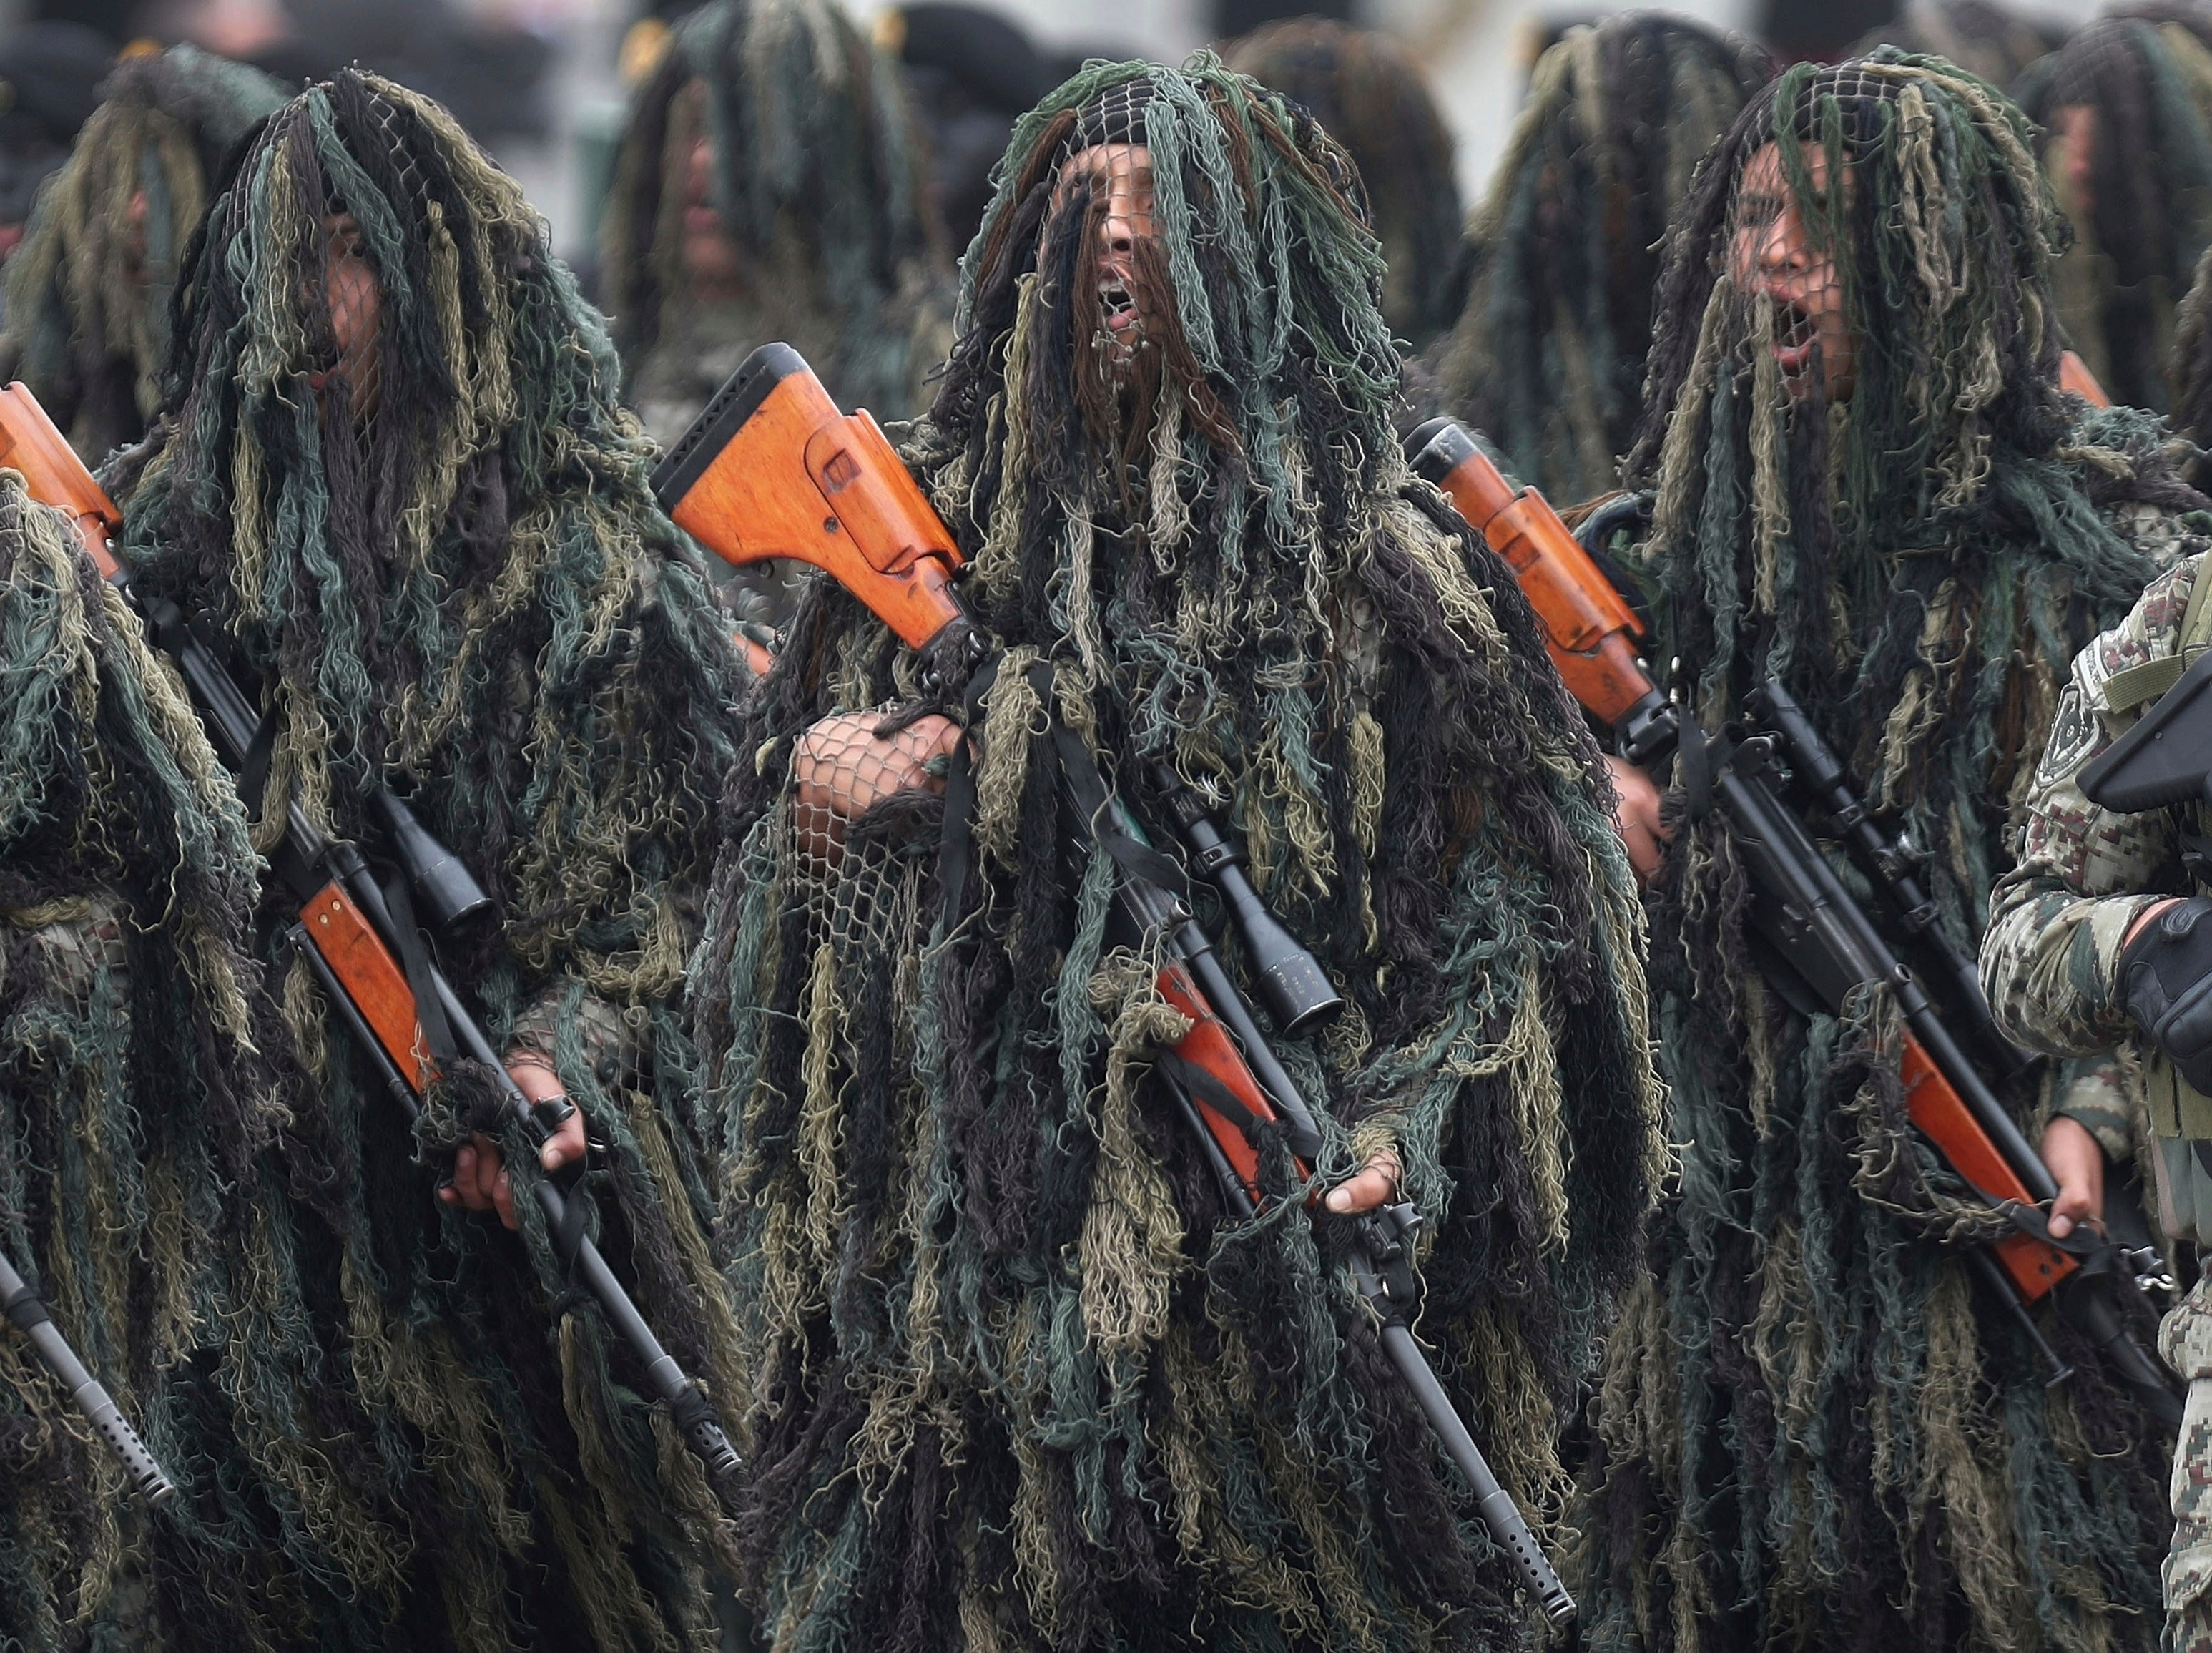 Members of the Peruvian Army Special Operations march in their ghille suits during a military parade marking the Armed Forces' anniversary, in Lima, Peru, Friday, Sept. 21, 2018.